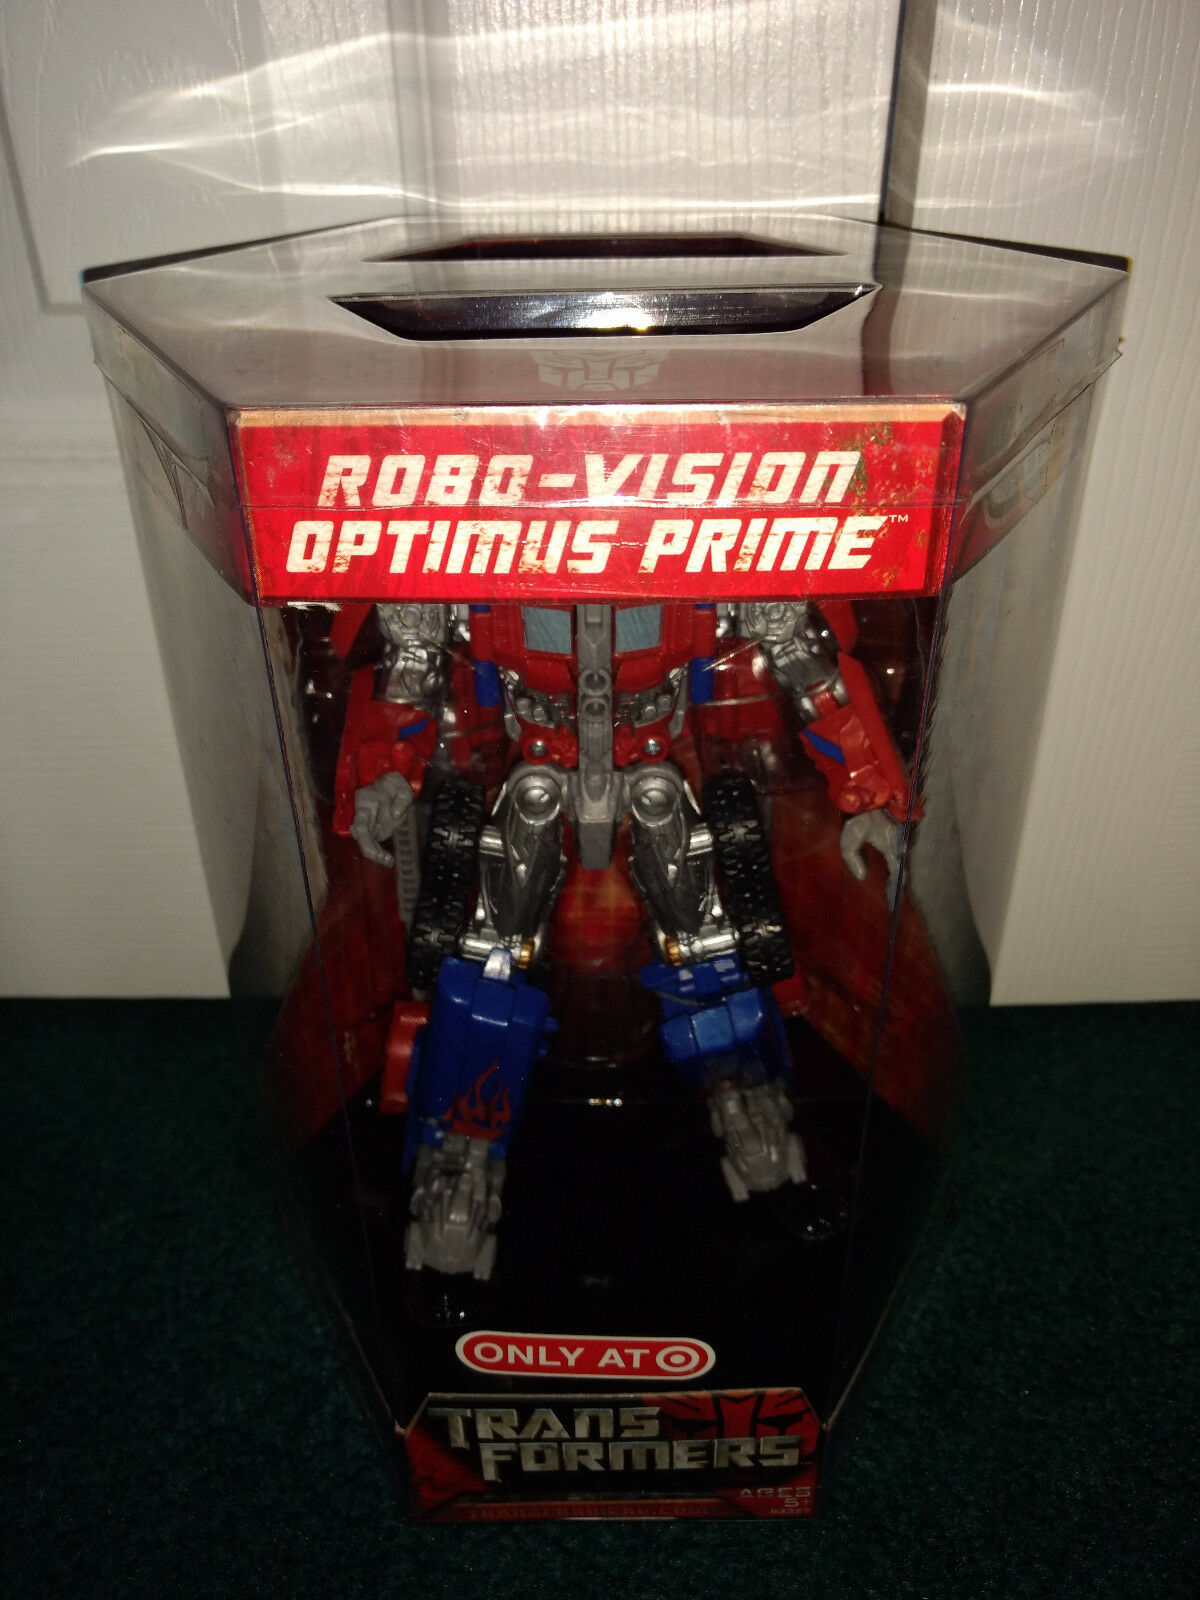 Robo-Vision Optimus Prime Transformers Movie 1 Hasbro 2007 MISP Target Exclusive